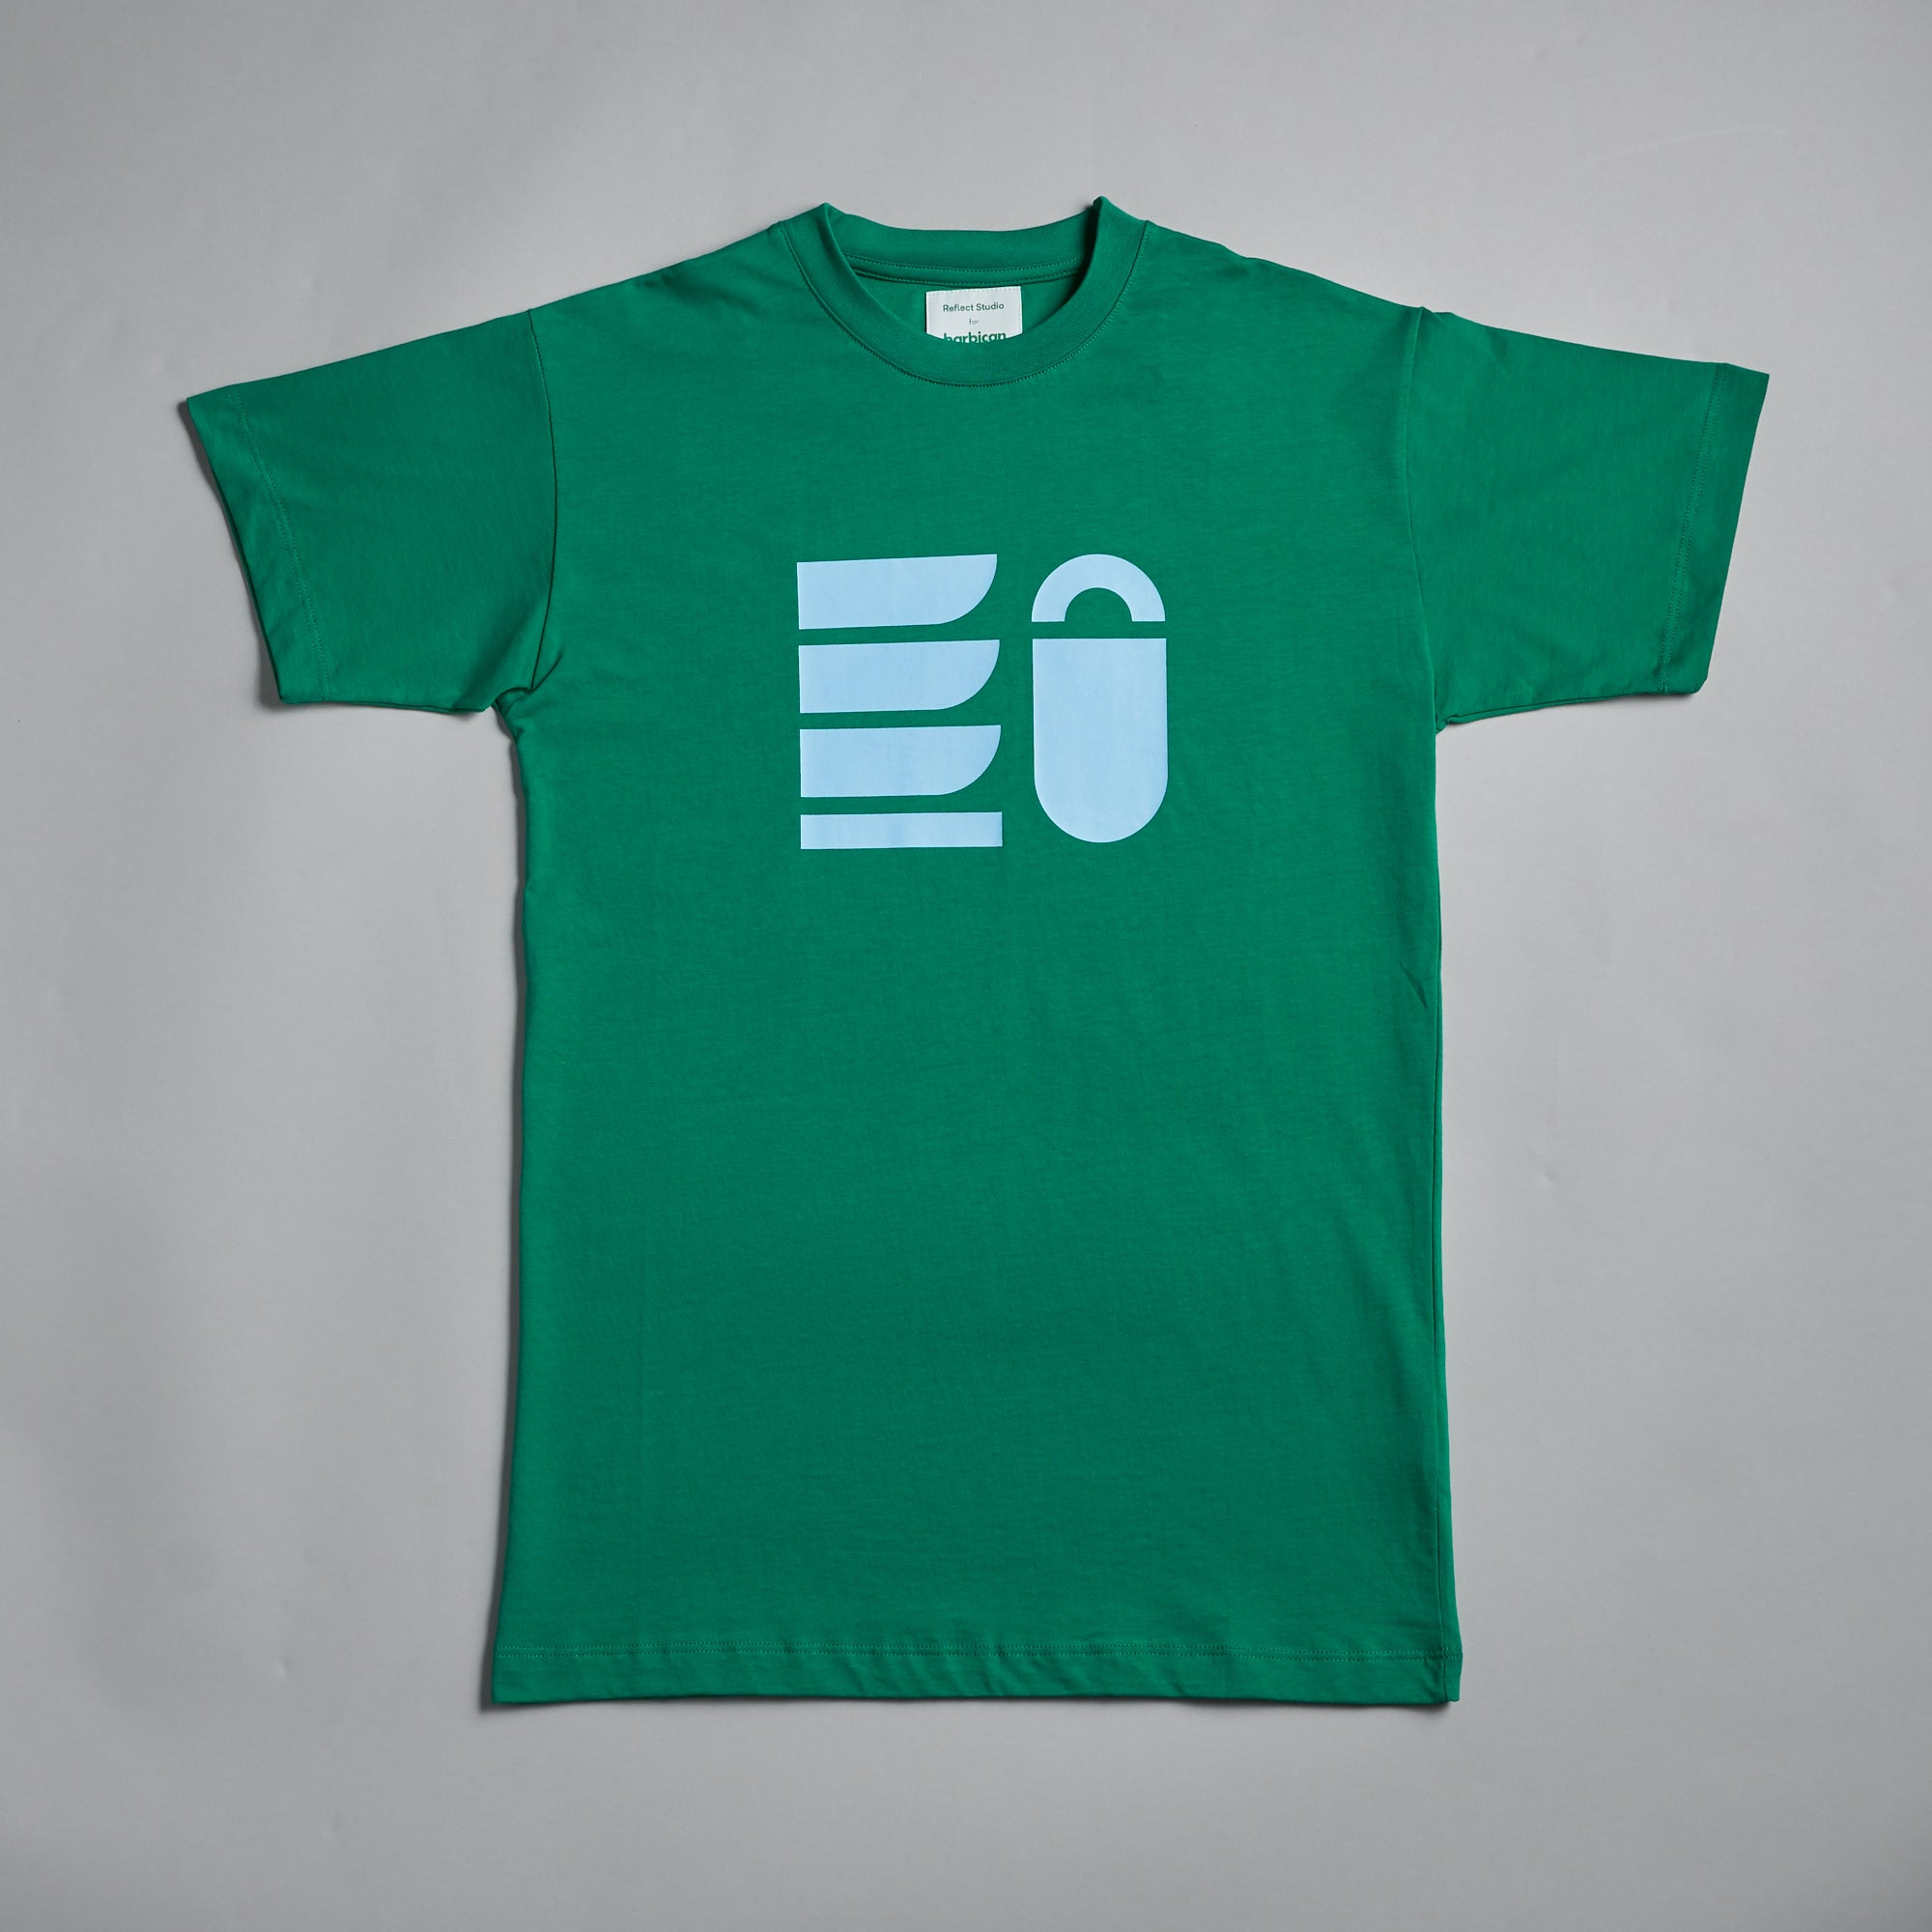 Green Shapes T-shirt by Reflect Studio